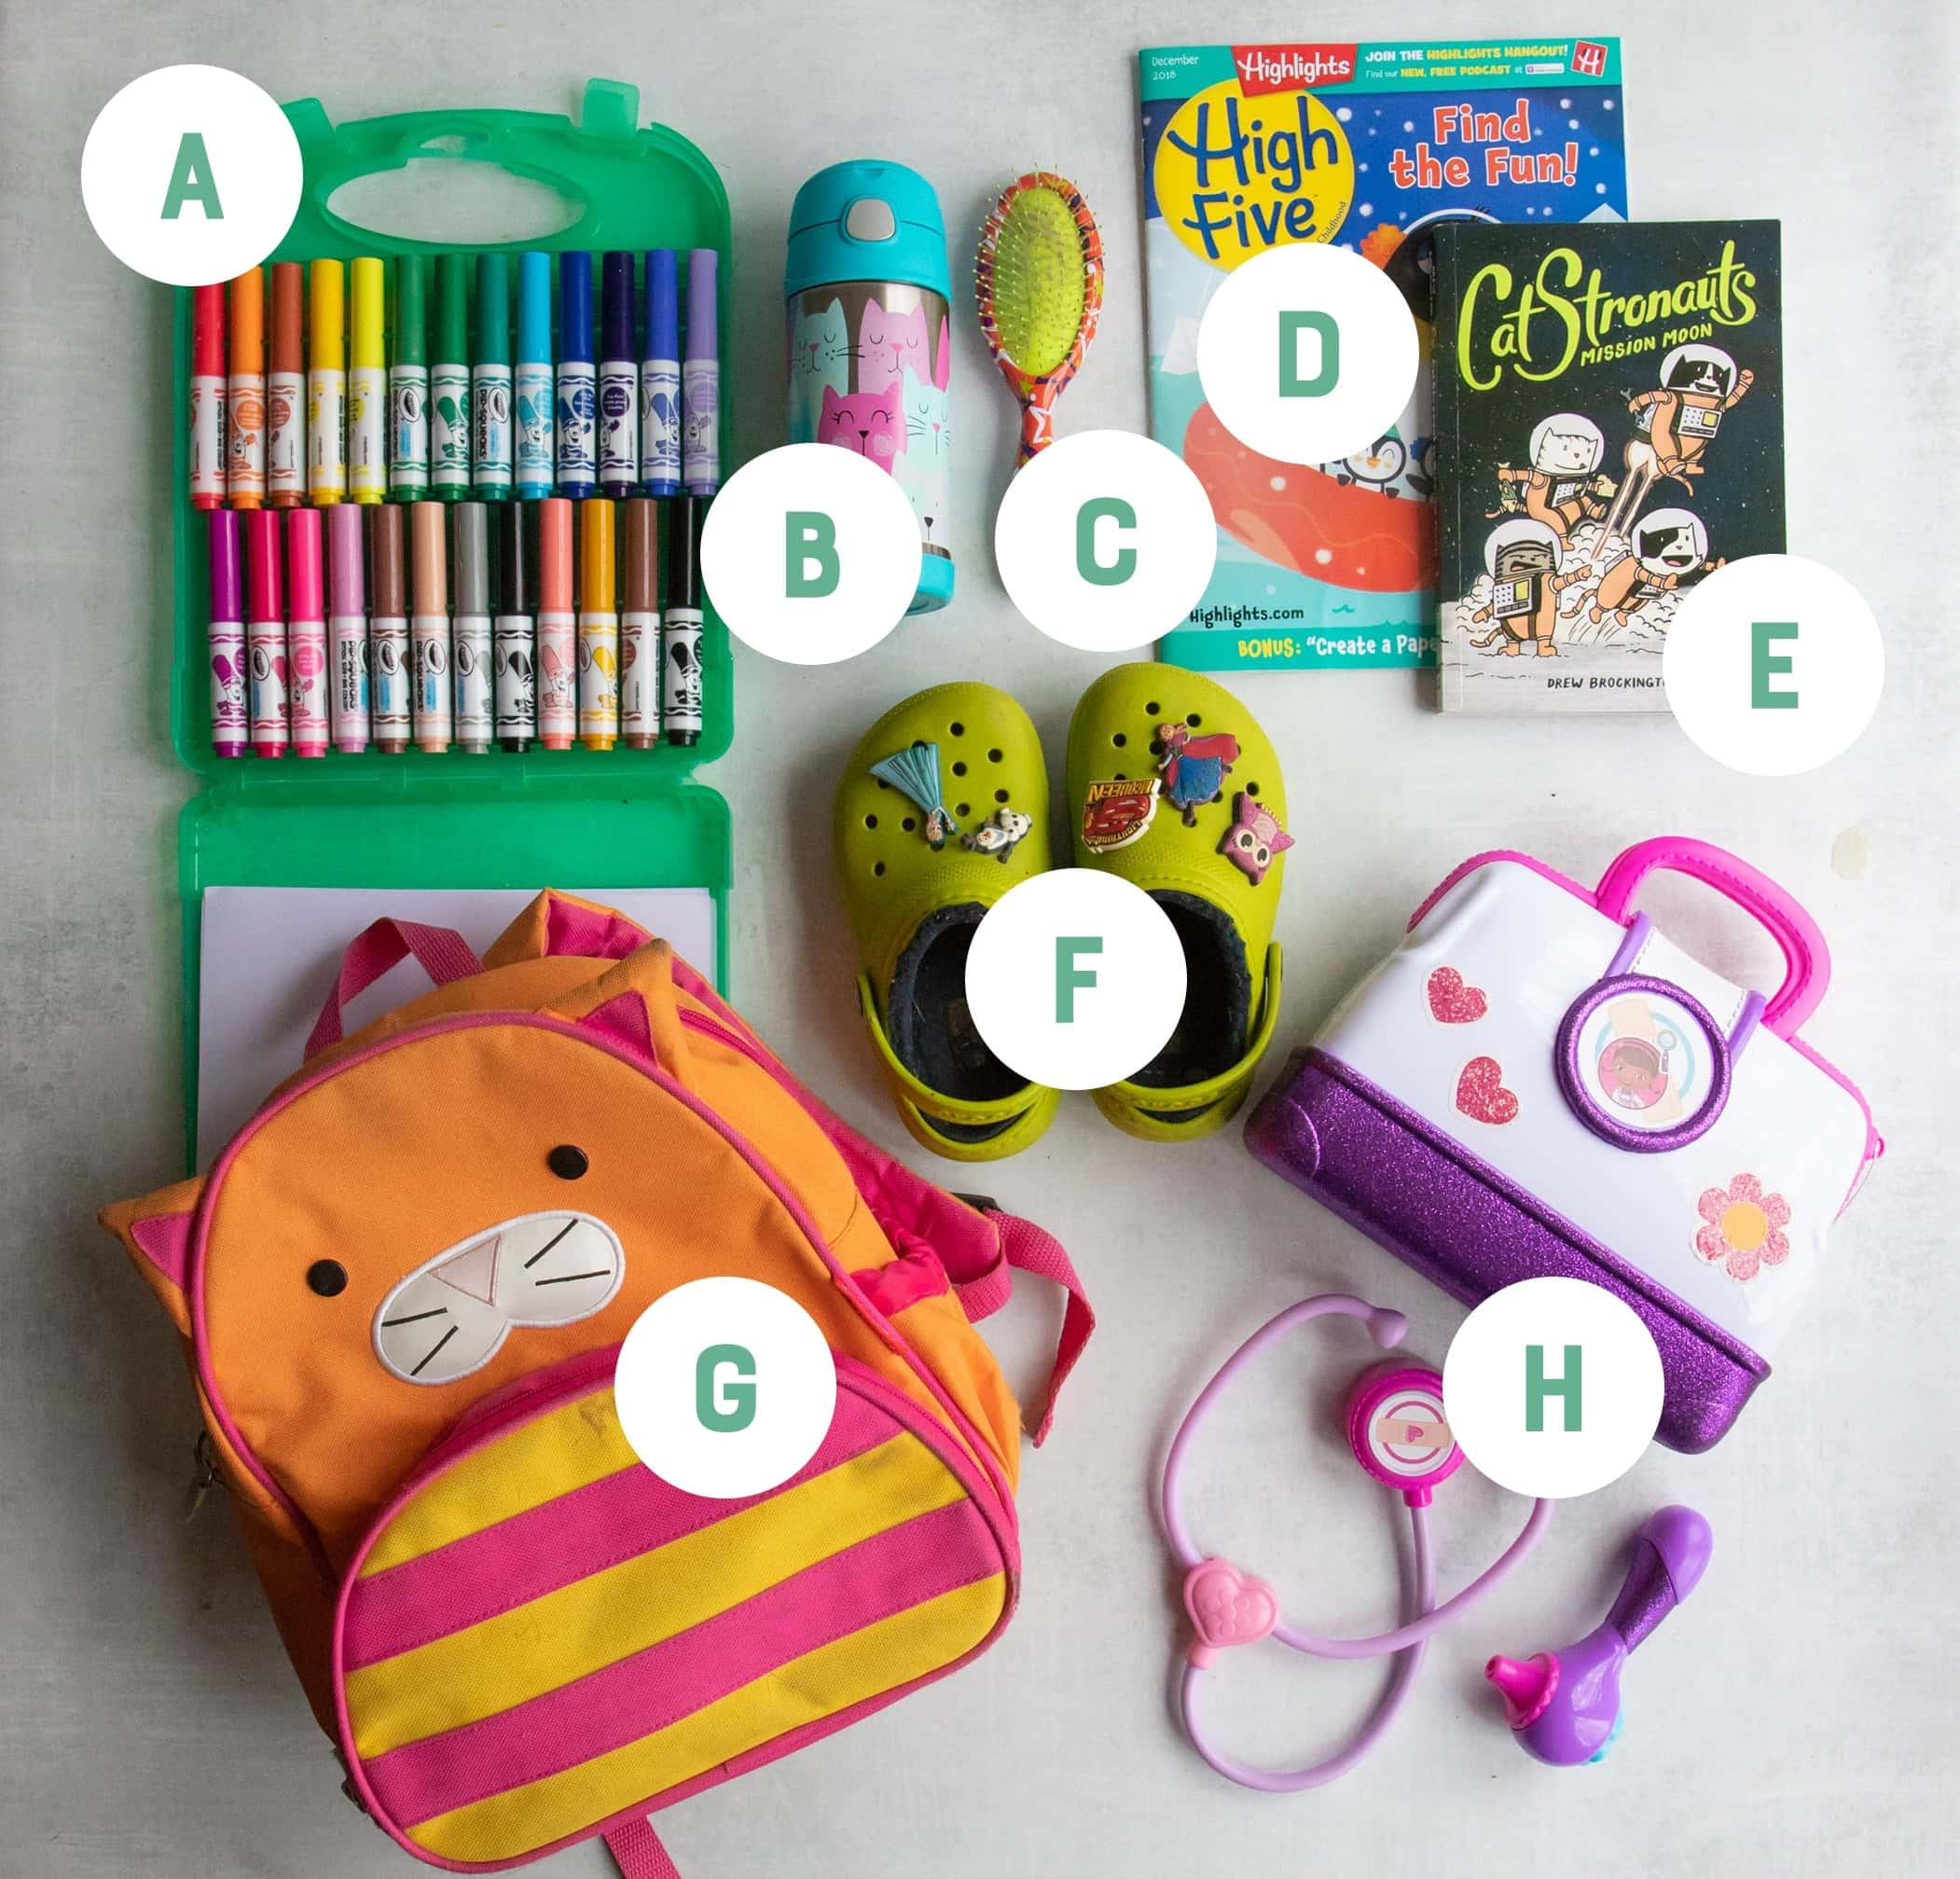 Kid gift ideas arranged on a gray backdrop and labeled with letters: markers, Crocks, books, magazines, a backpack, a water bottle and a hair brush.